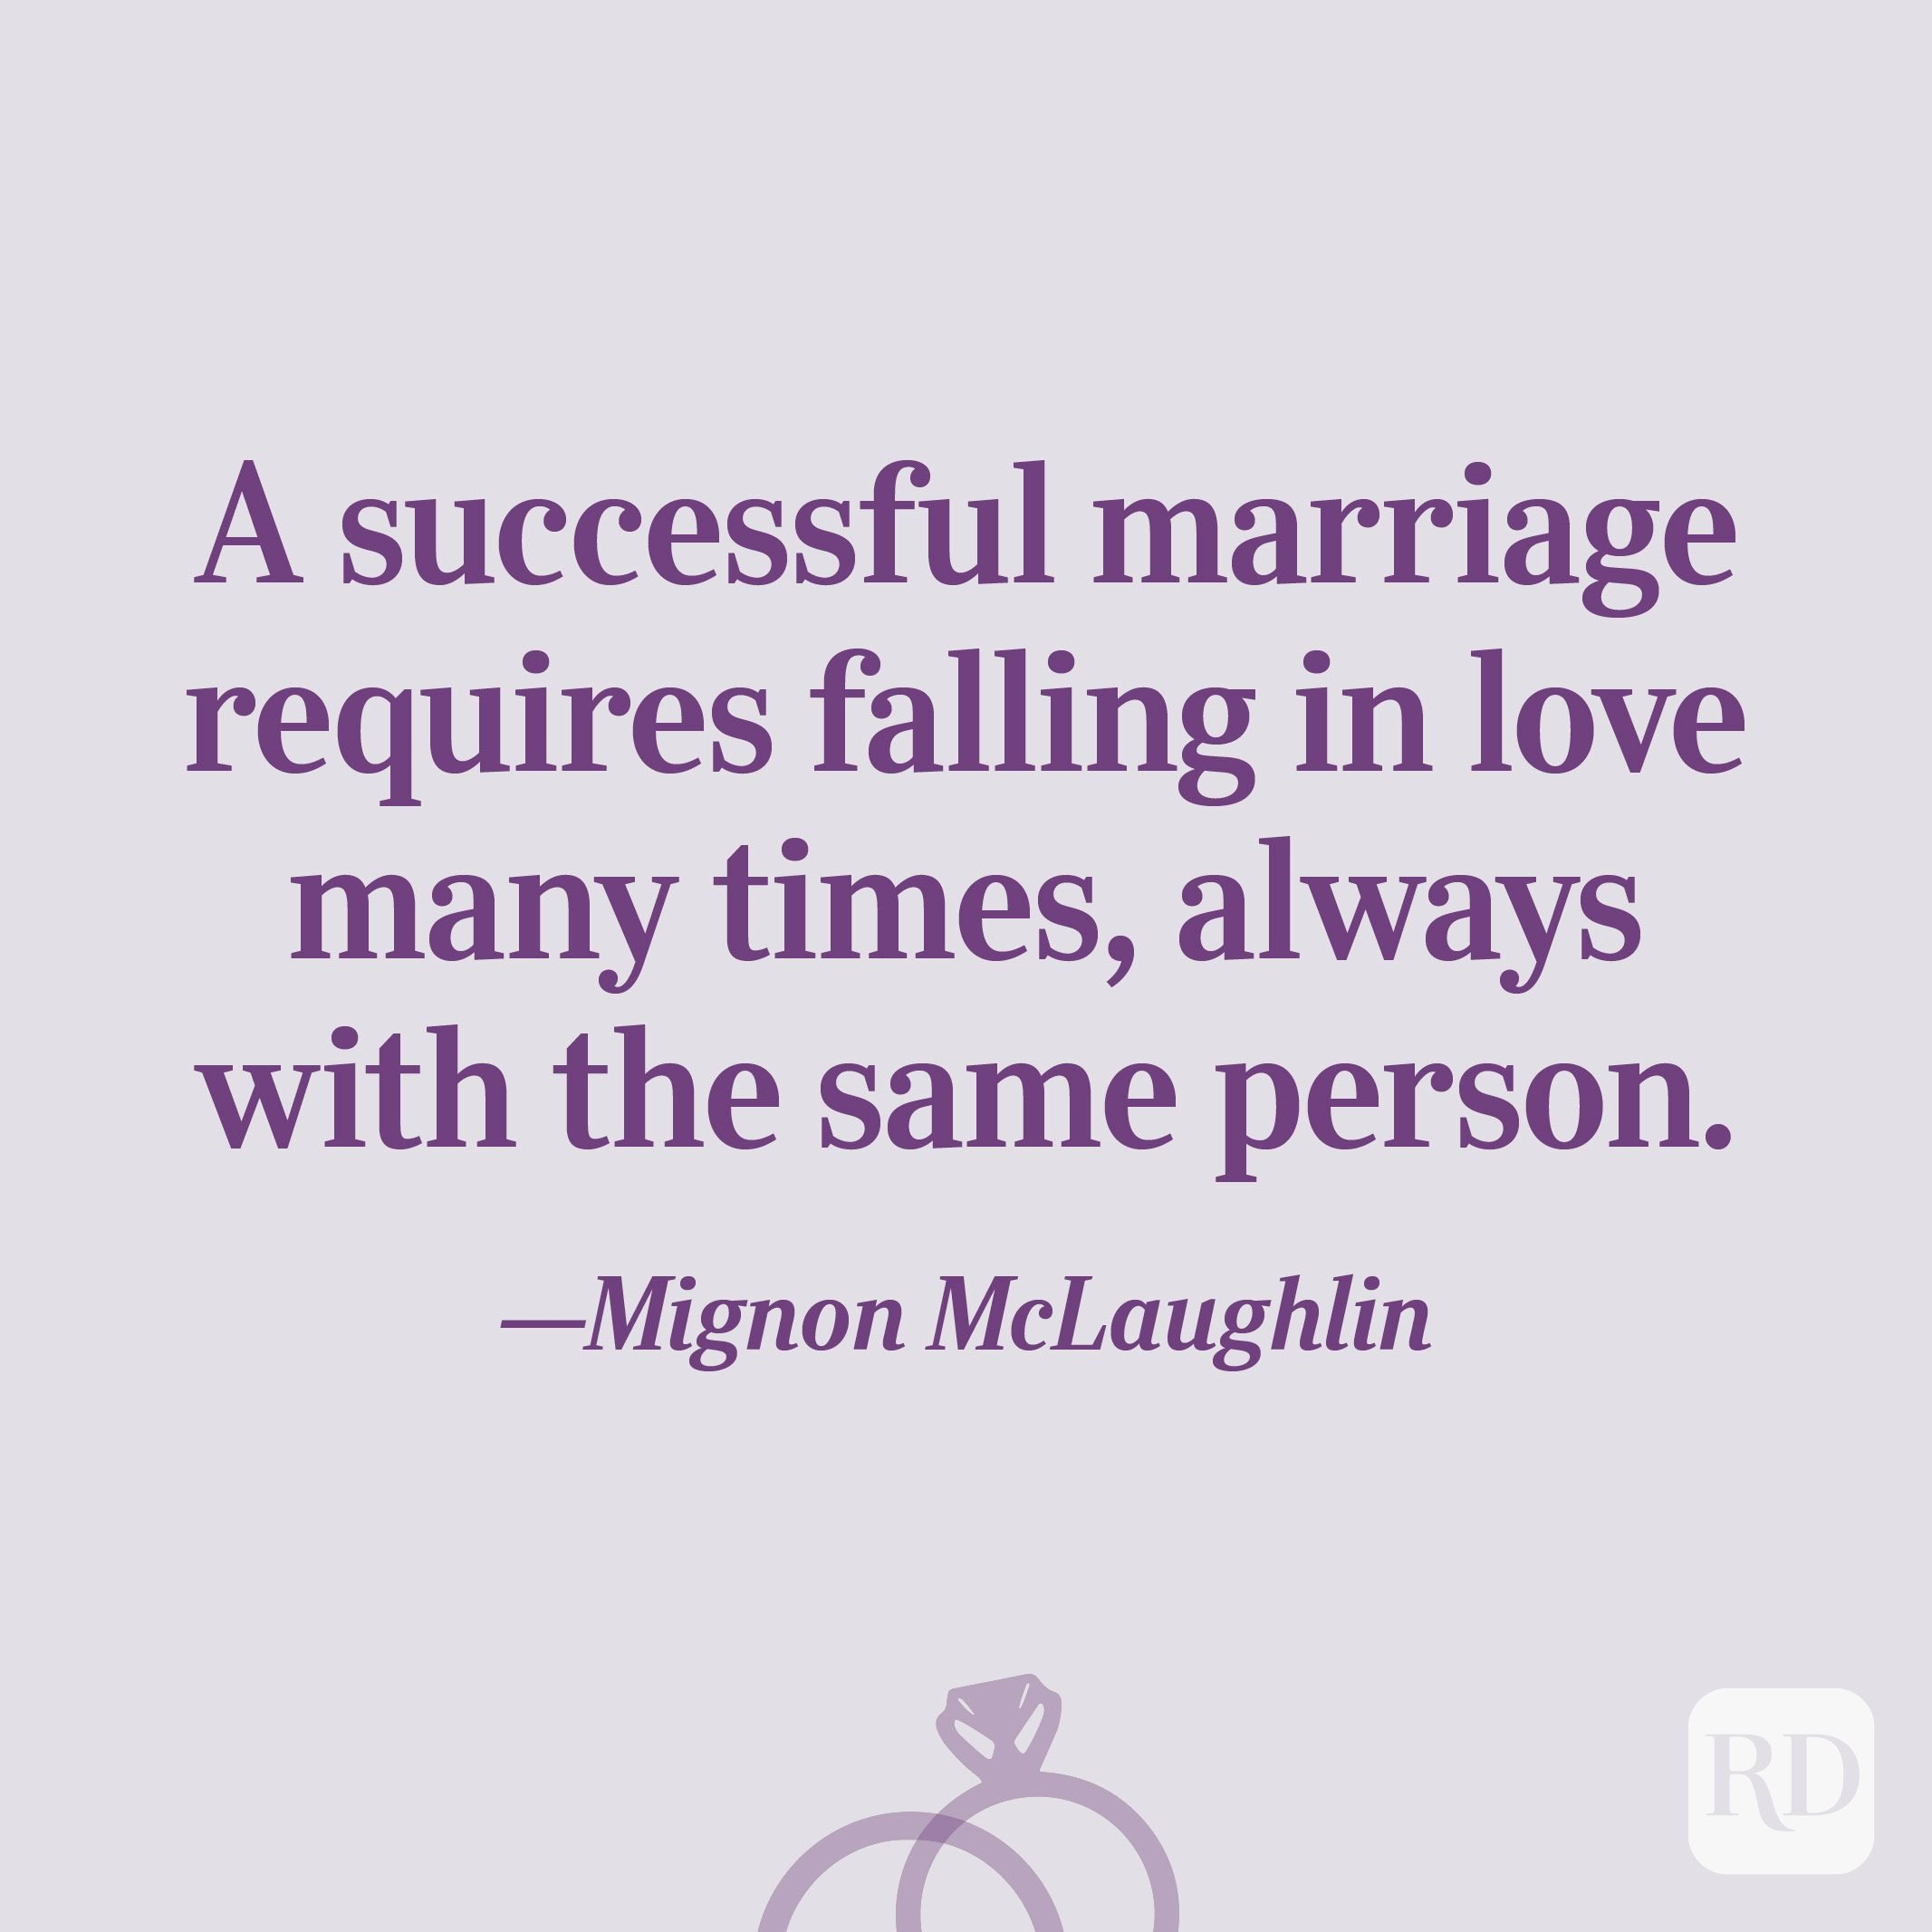 """A successful marriage requires falling in love many times, always with the same person.""—Mignon McLaughlin"